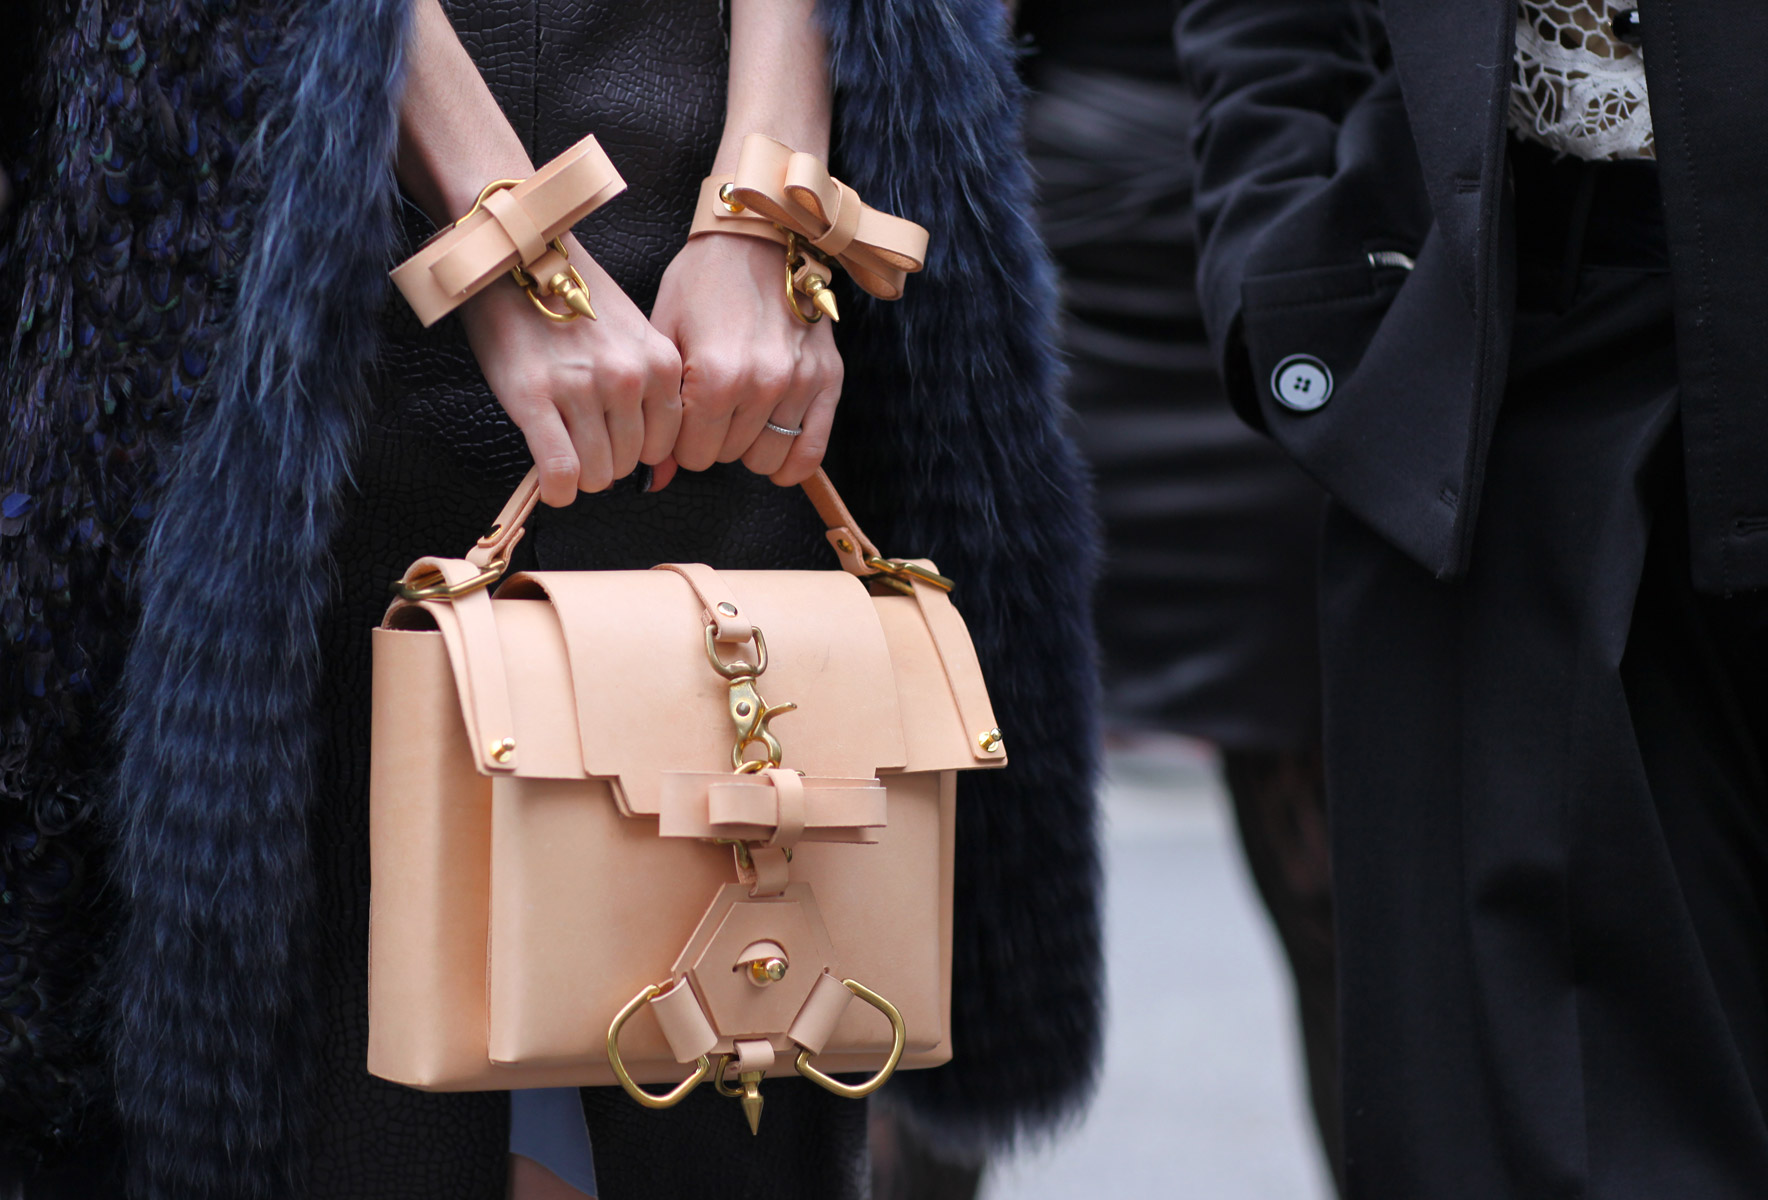 Niels Peeraer Bag and Cuffs